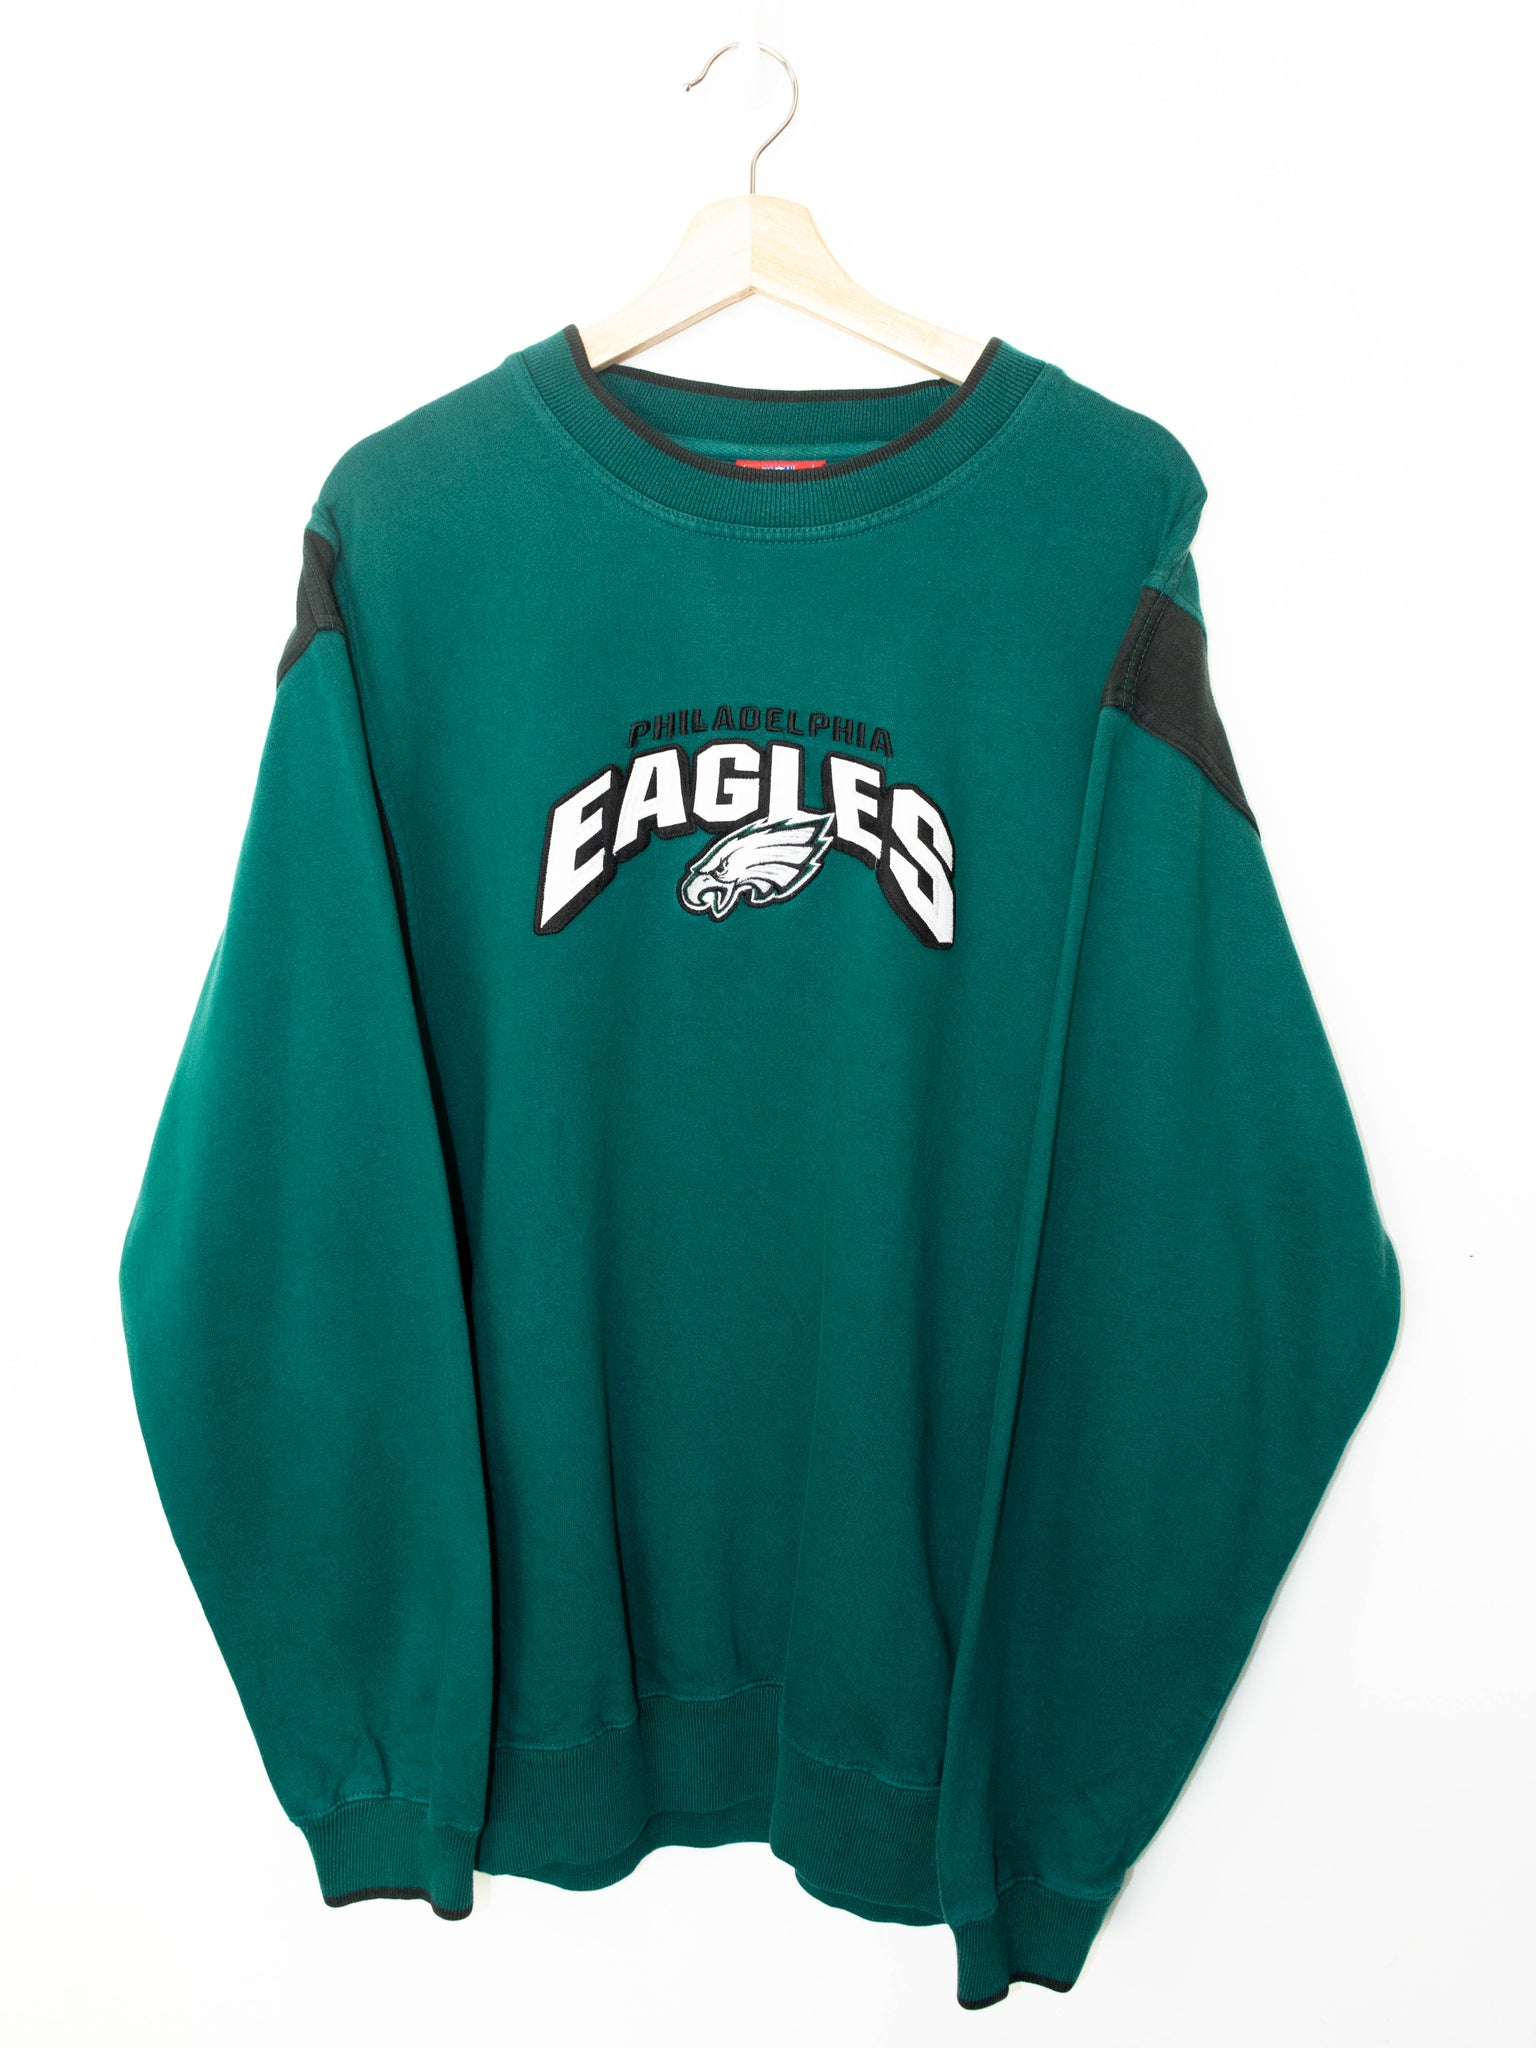 Vintage Philadelphia Eagles sweater size: L